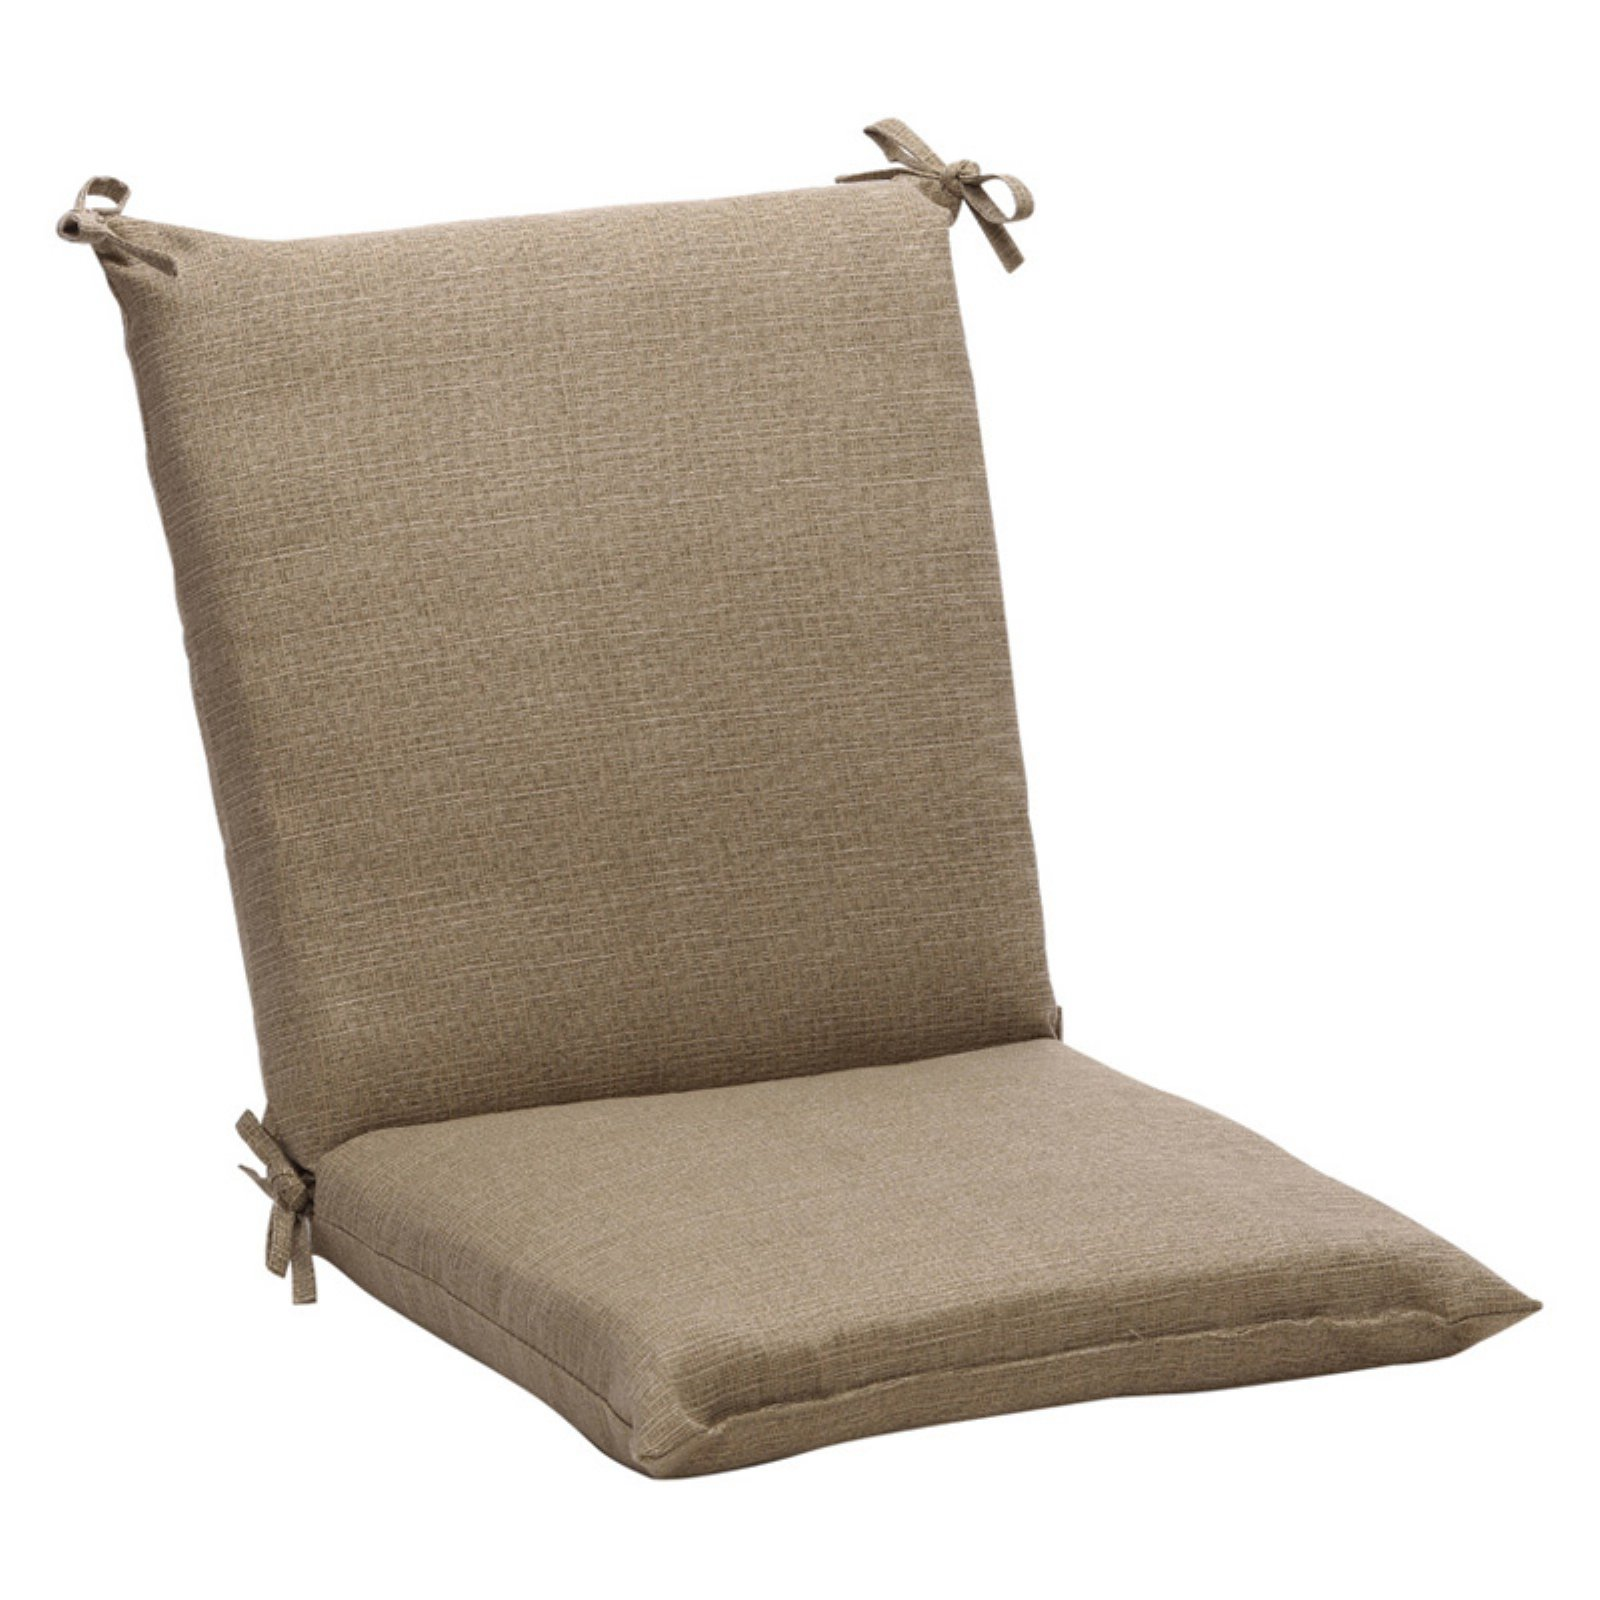 Pillow Perfect Outdoor Textured Solid Chair Cushion - 36.5 x 18 x 3 in.